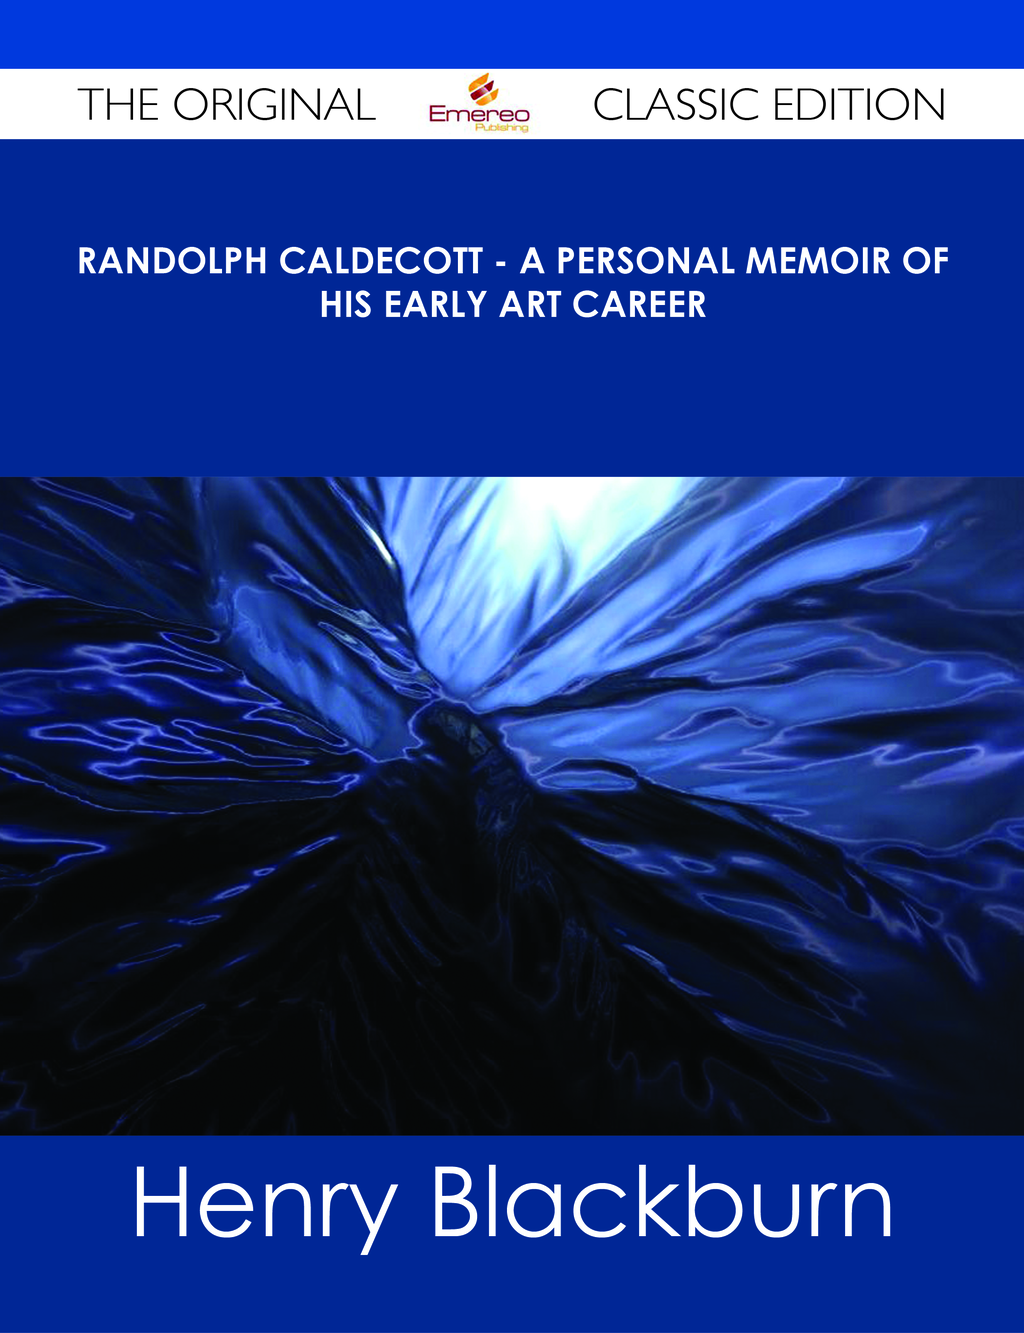 Randolph Caldecott - A Personal Memoir of His Early Art Career - The Original Classic Edition